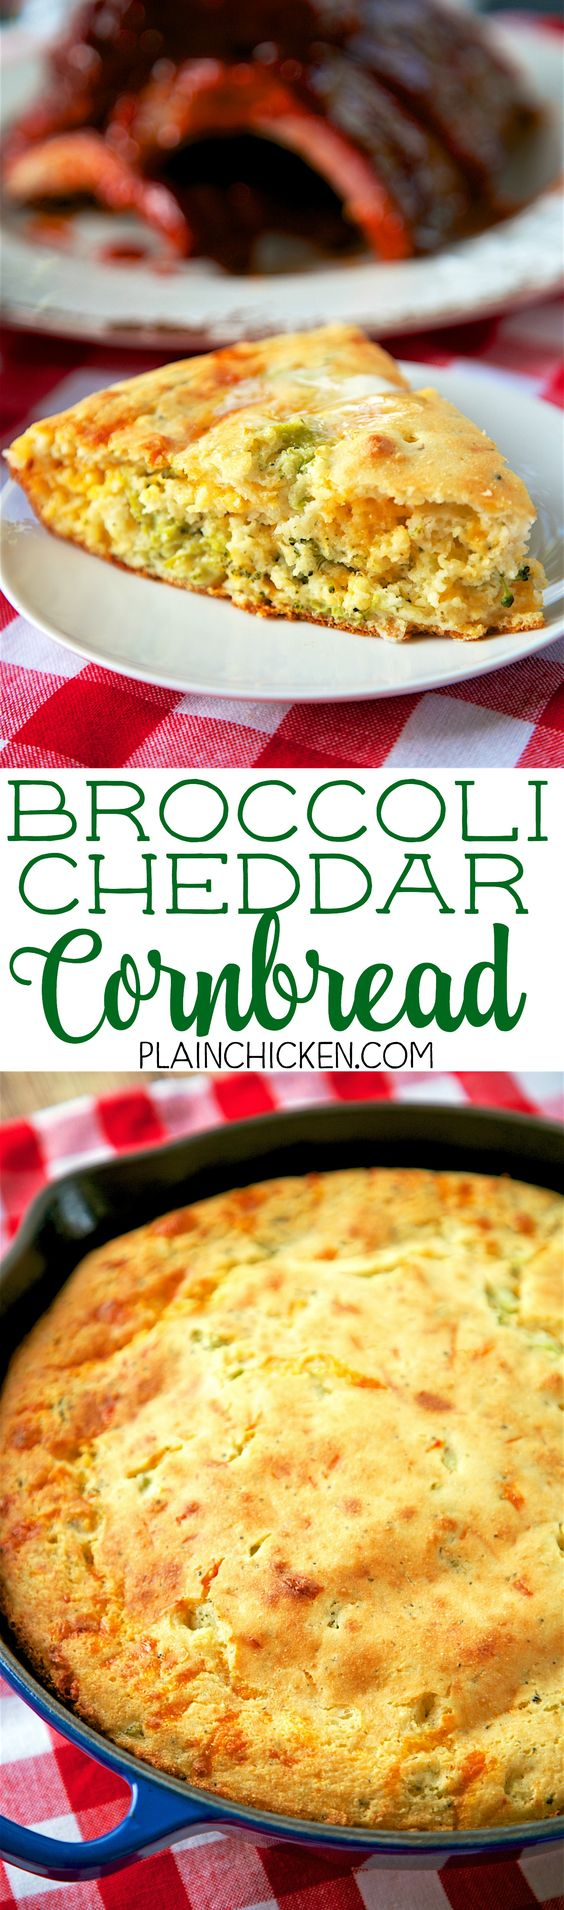 Broccoli Cheddar Cornbread - only 6 ingredients! This stuff is crazy ...